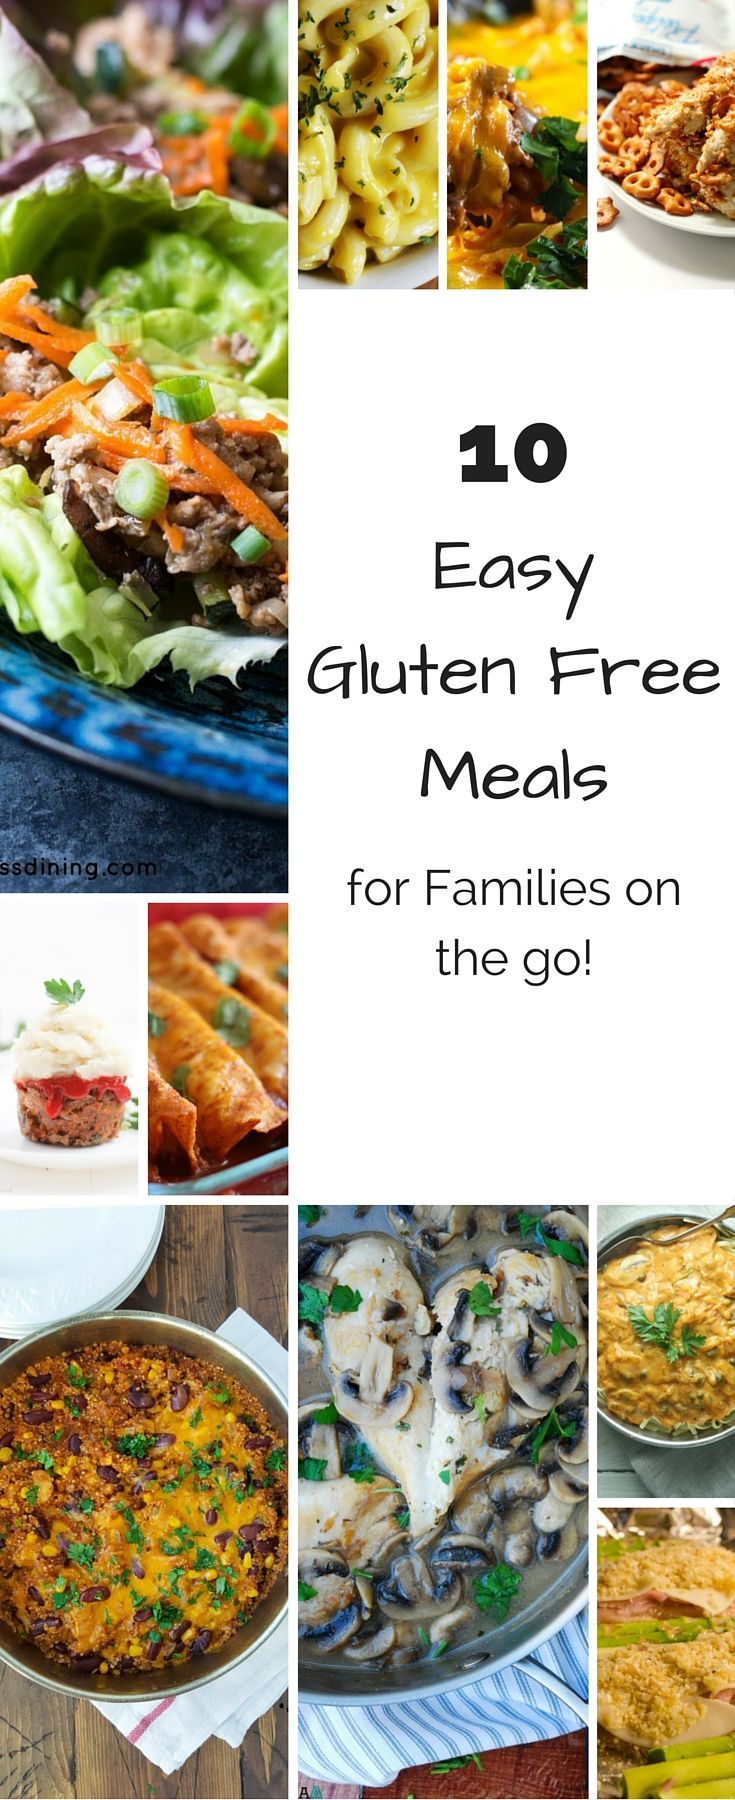 10 Easy Gluten Free Meals for Families on the Go